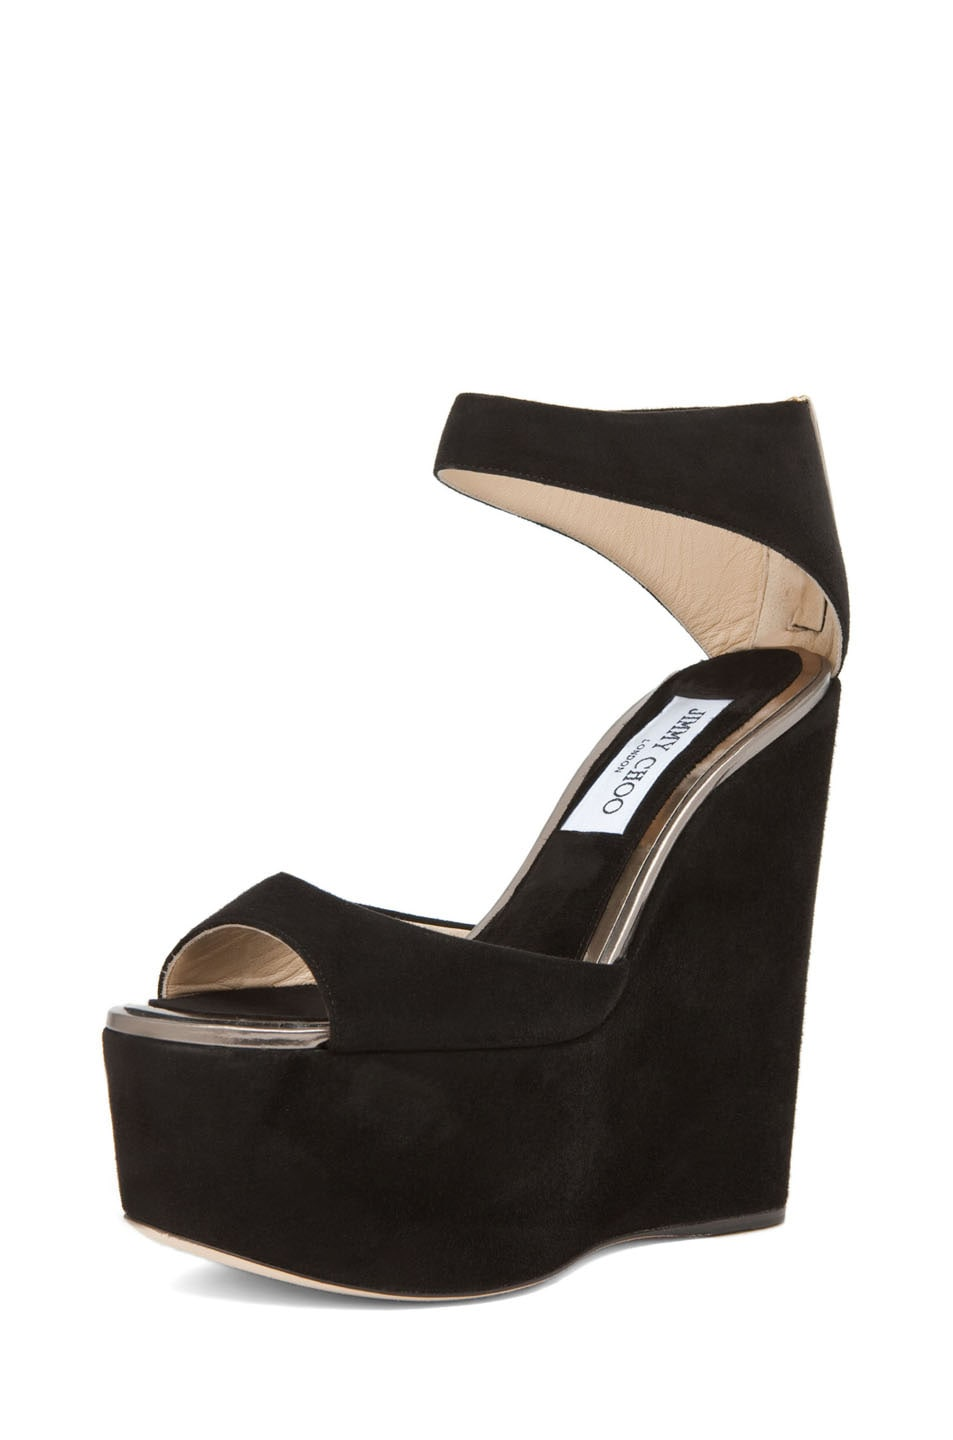 Image 2 of Jimmy Choo Topaz Wedge Sandal in Black